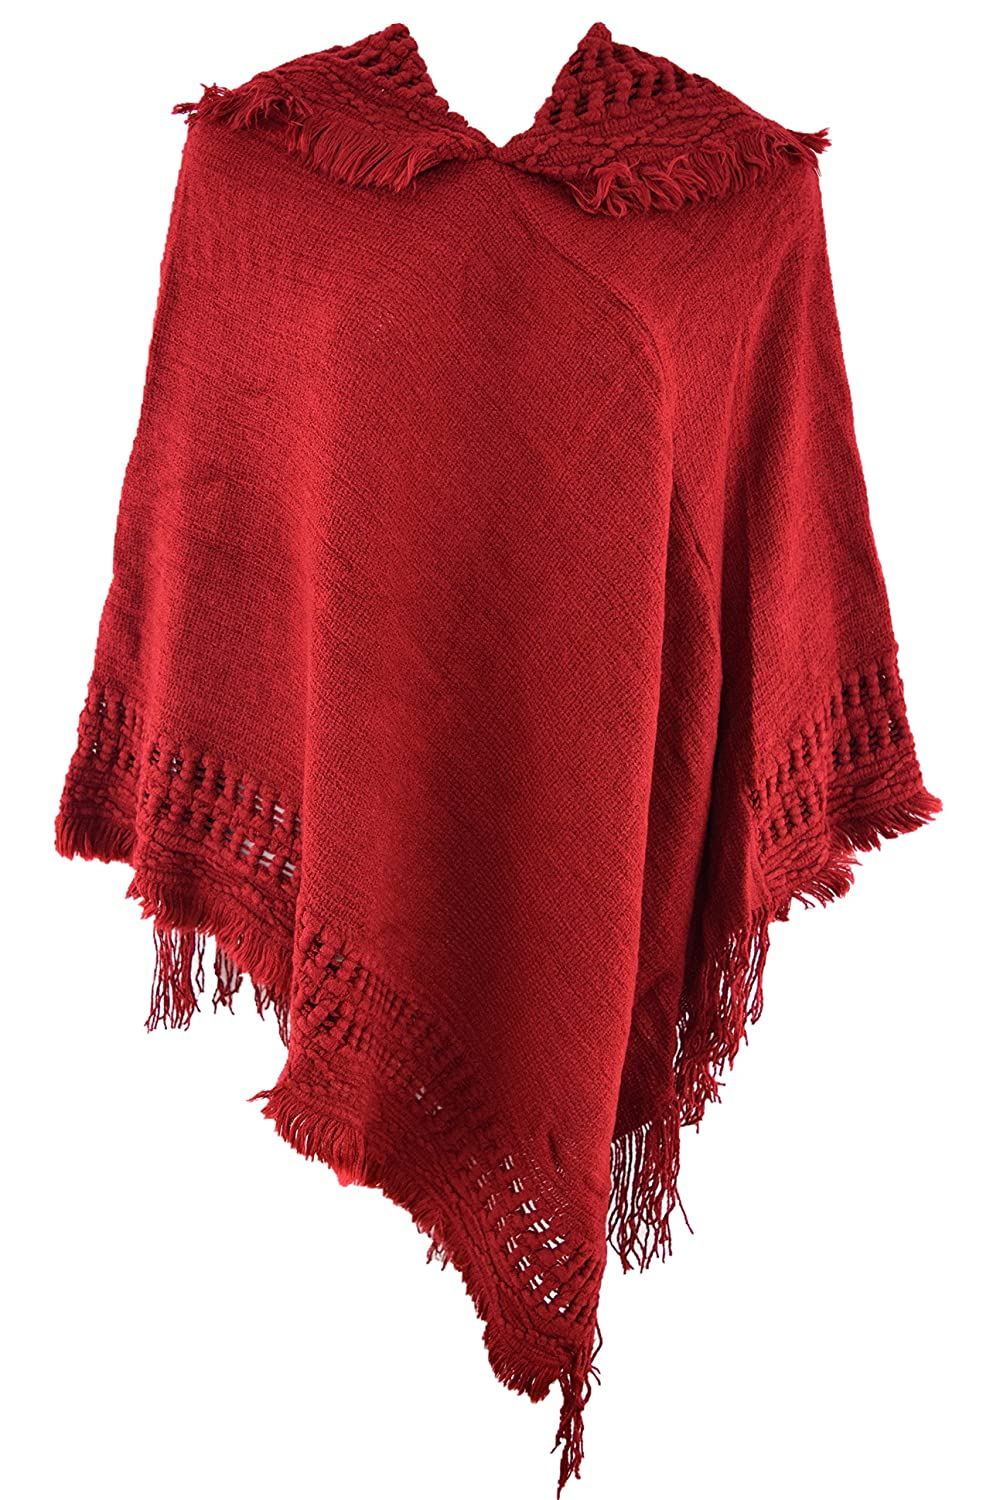 HY Women Batwing Tassels Poncho Cape Winter Knit Hats Sweater Cloak Outwear Red